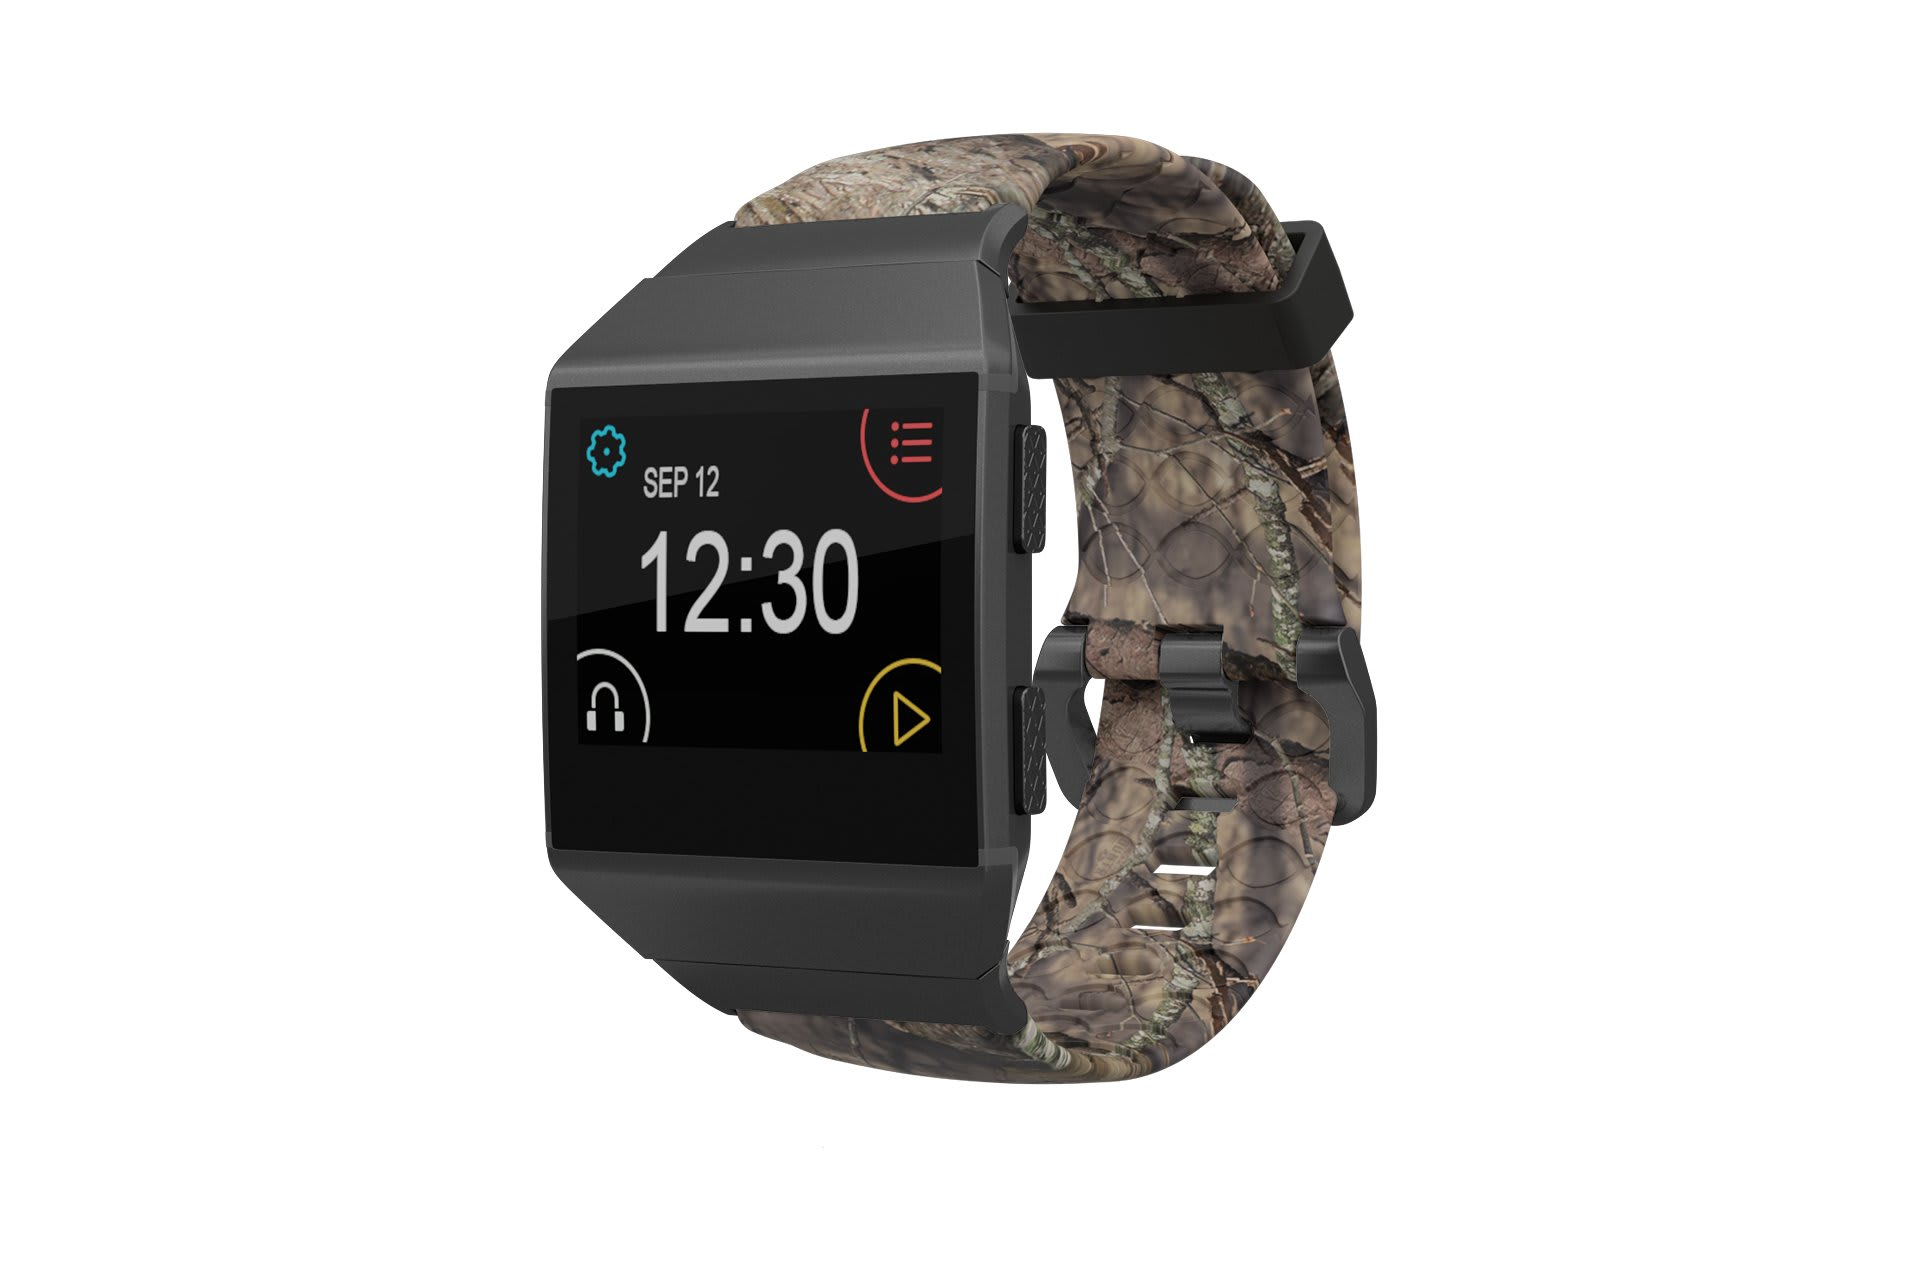 Ionic Mossy Oak Breakup  fitbit watch band with gray hardware viewed front on